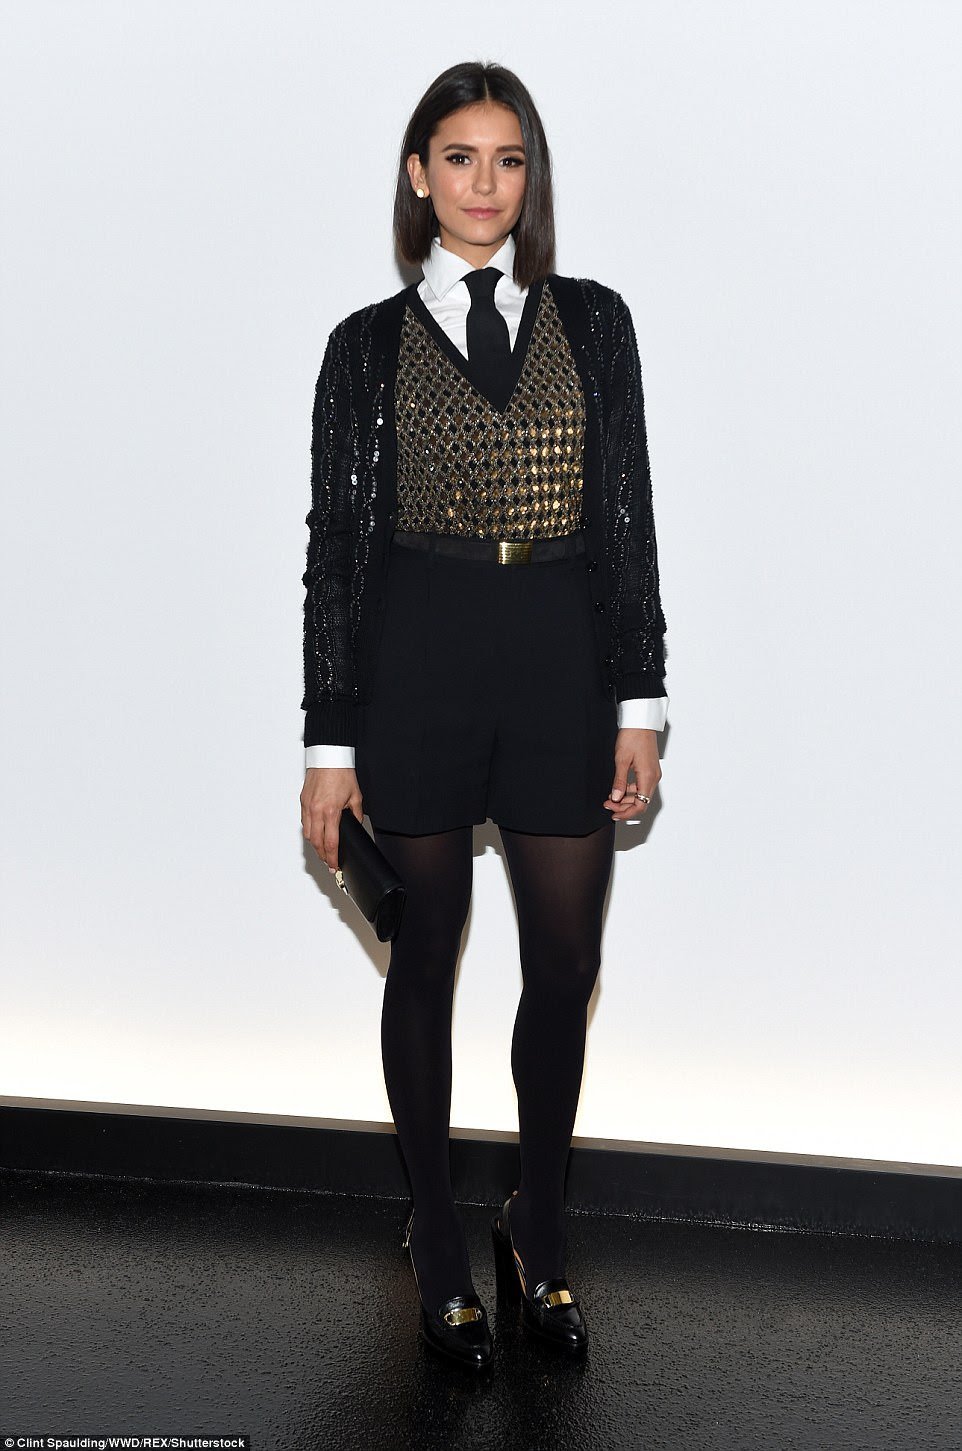 Geek chic:The show attracted Nina Dobrev, who looked preppy in a white shirt and black tie. She also wore black shorts, a glittery gold vest and sequinned black cardigan all from Ralph Lauren Collection